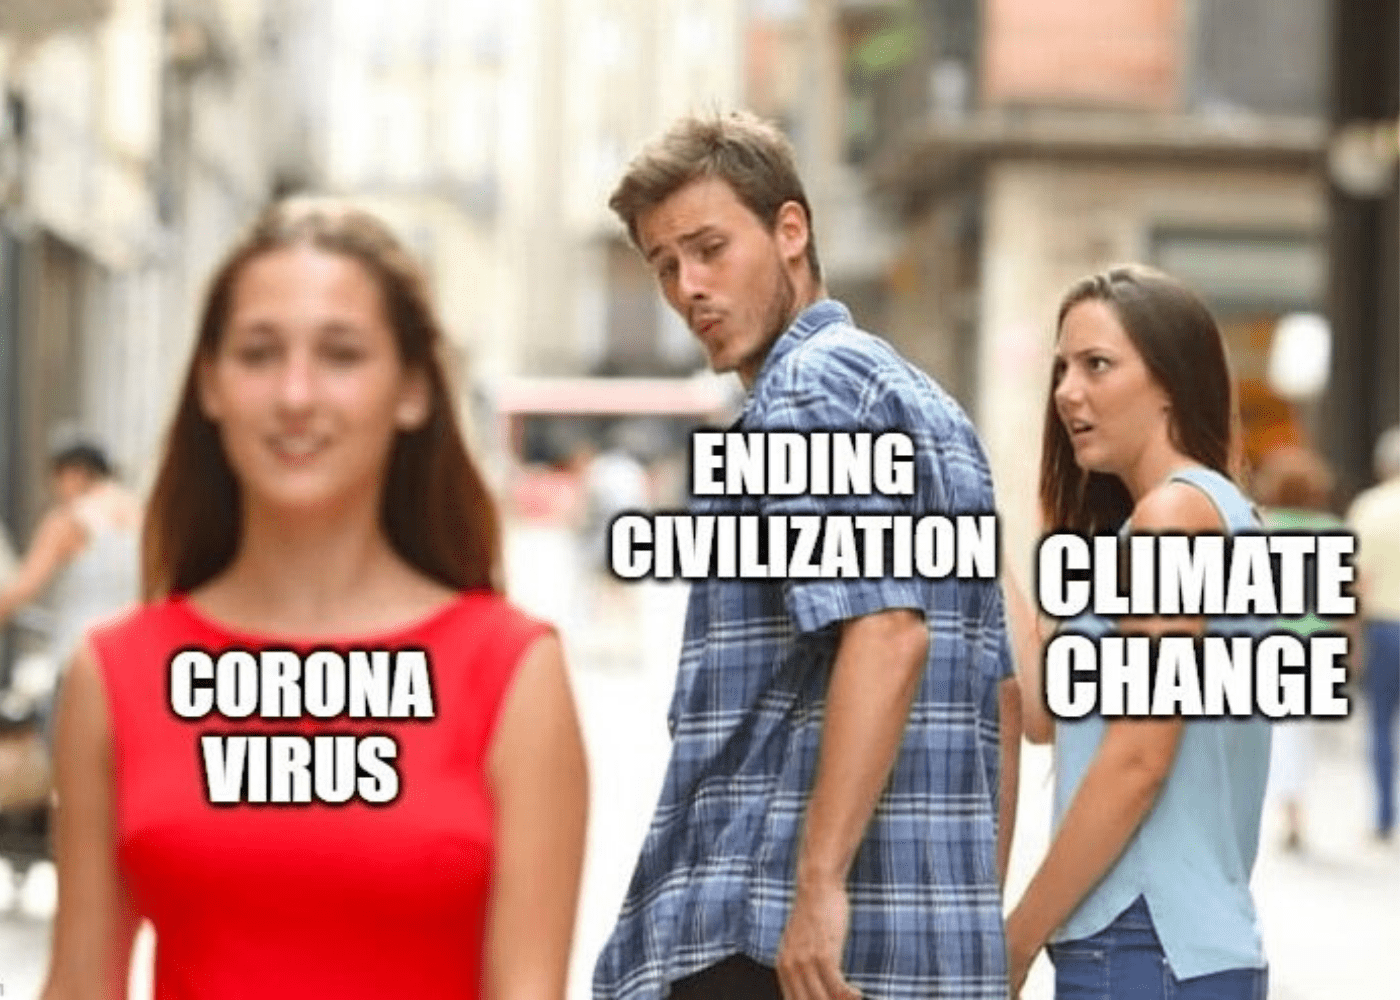 The most hilarious memes, tweets and trends that came out of the coronavirus pandemic